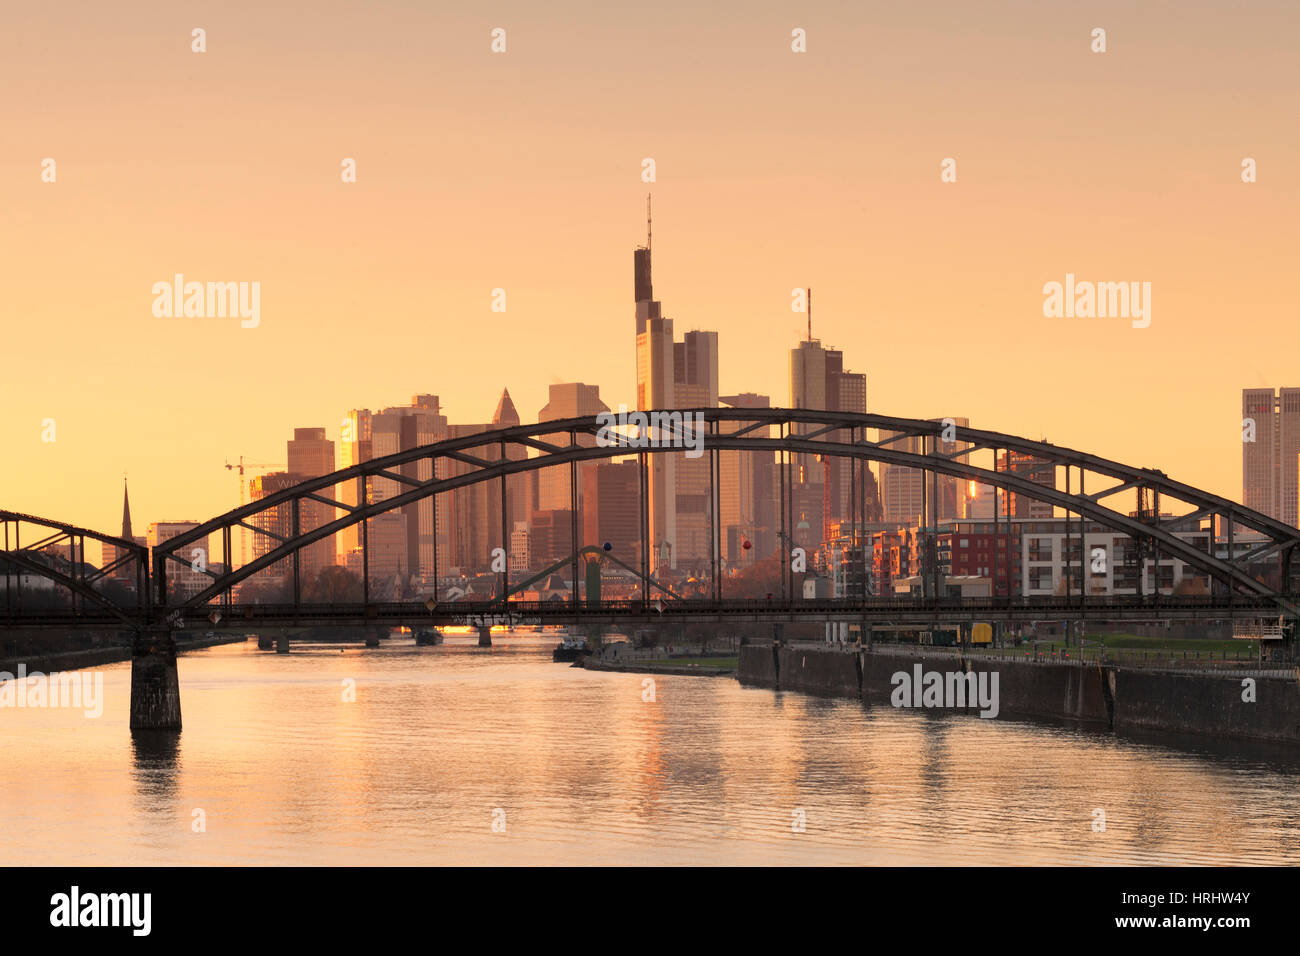 View over Main River to the financial district, skyline of Frankfurt, Hesse, Germany - Stock Image